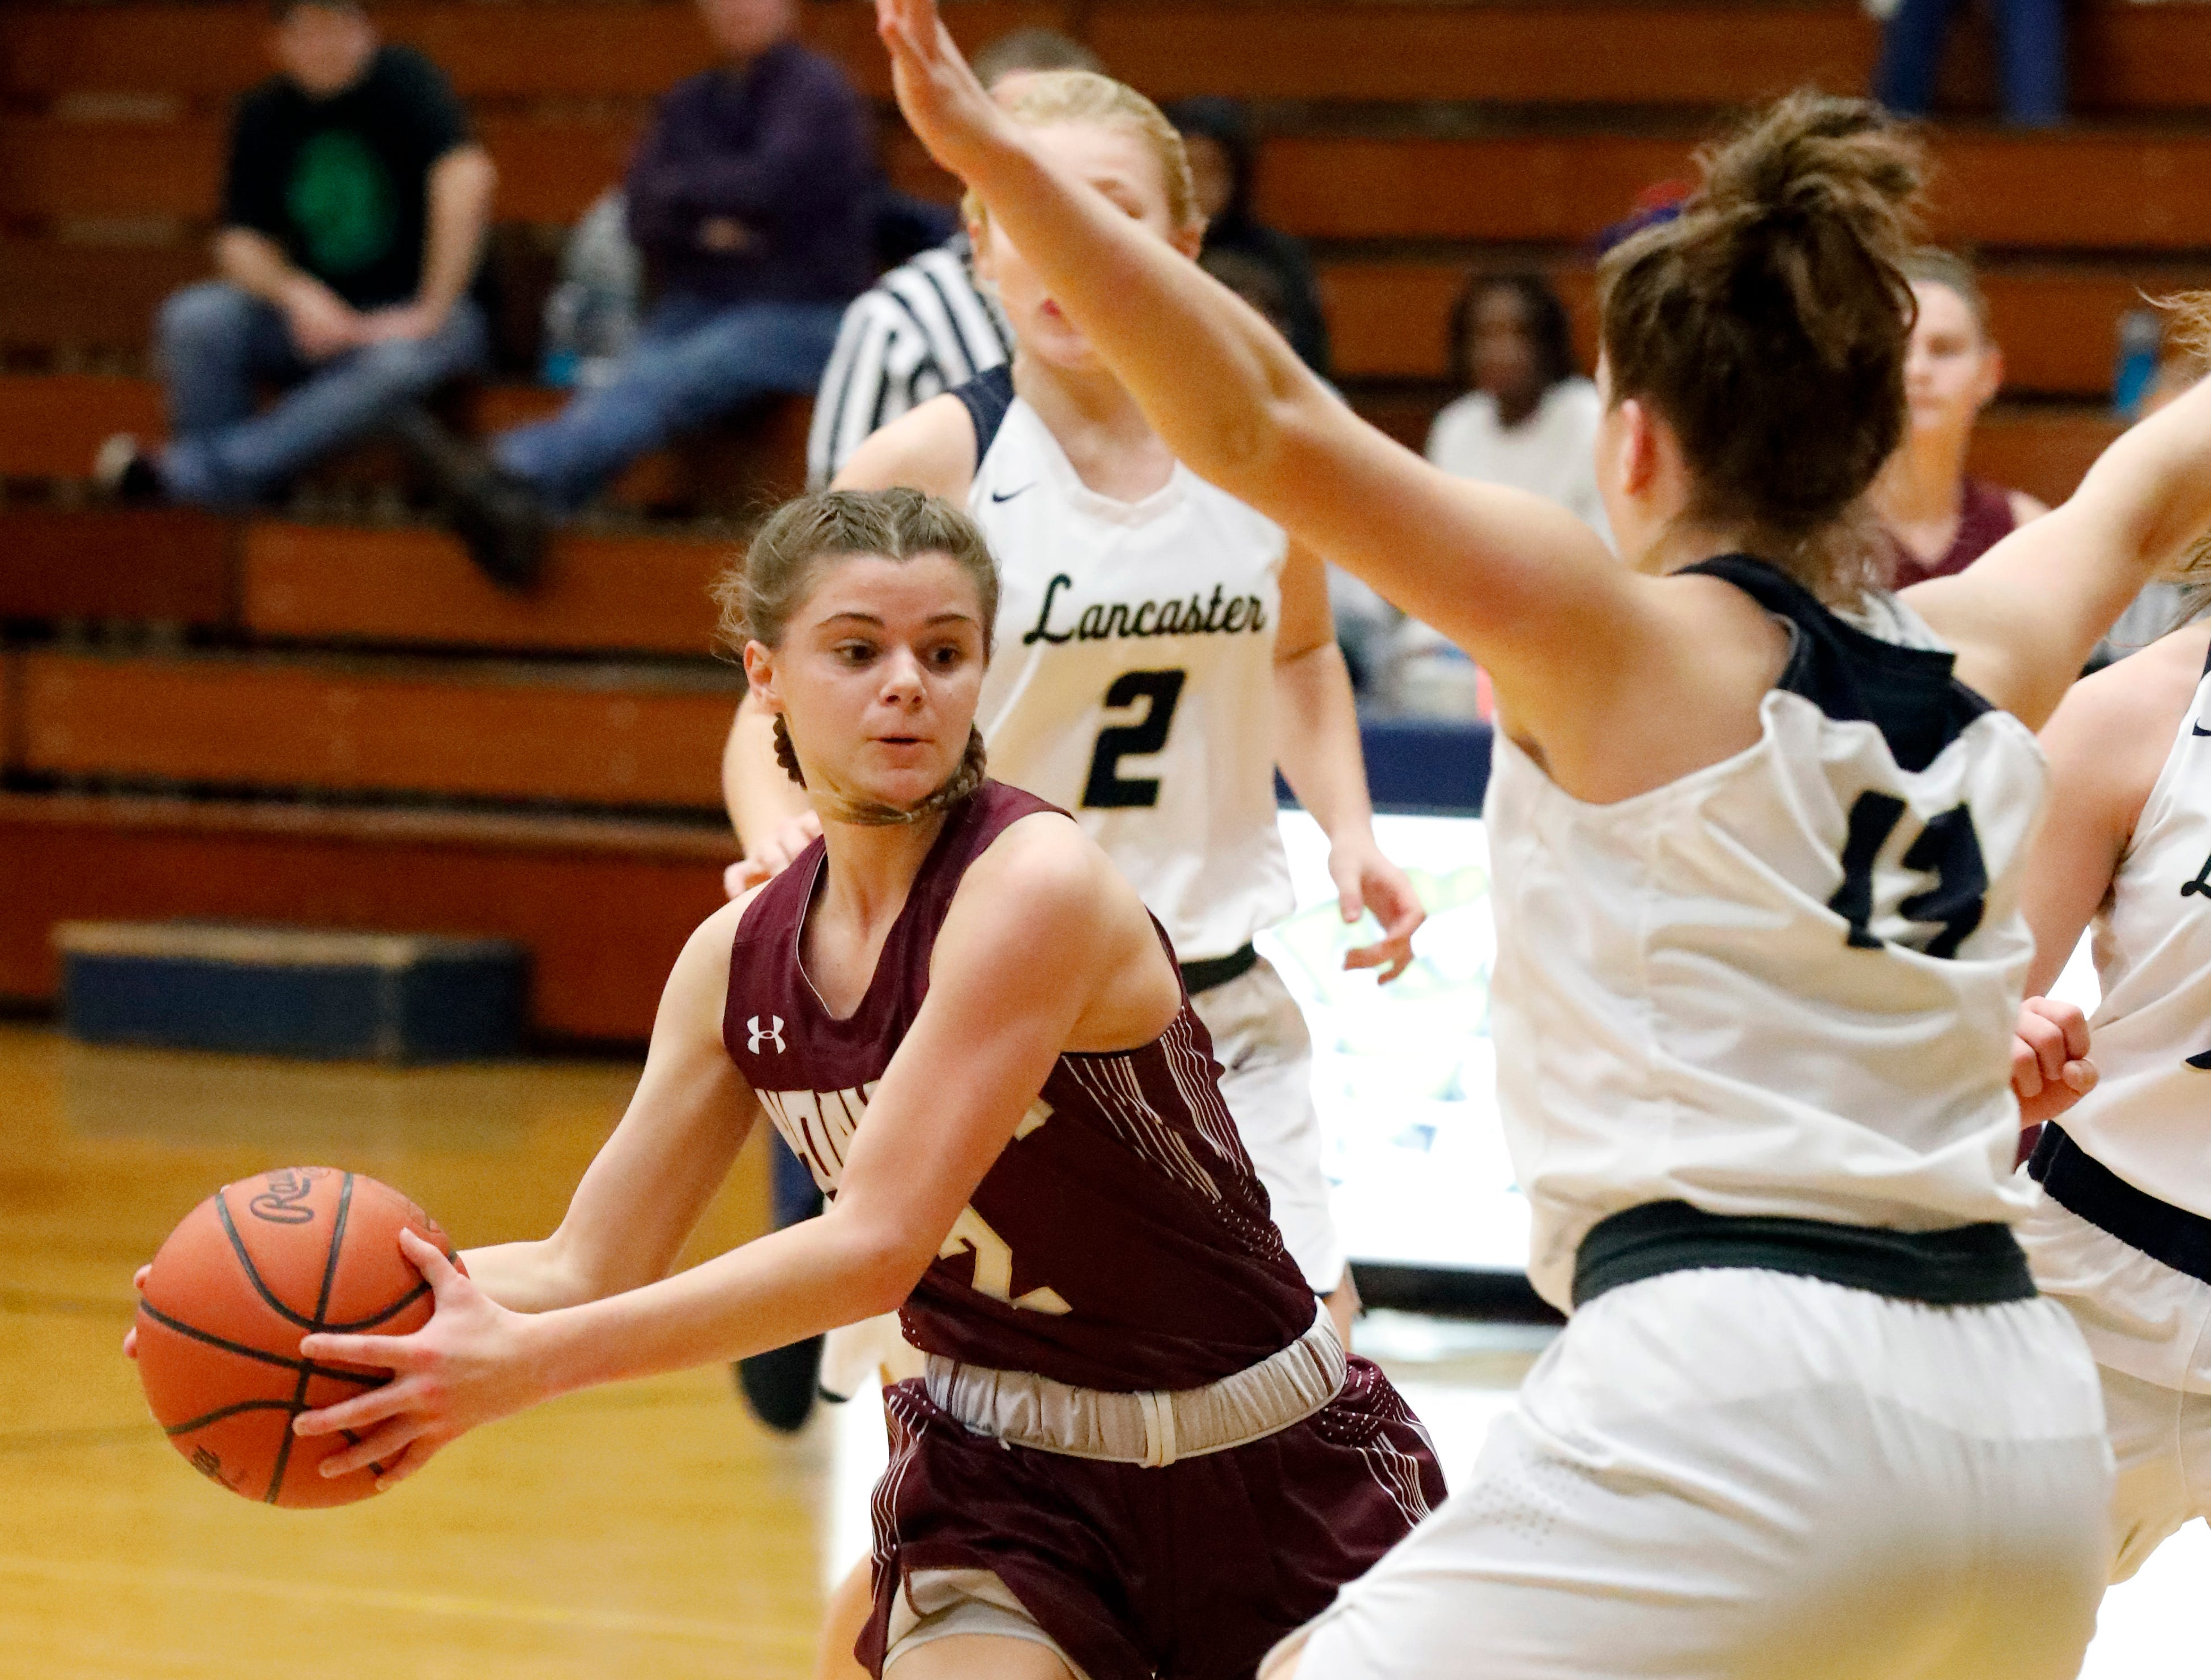 Lancaster defeated Licking Heights 43-37 Friday night, Dec. 28, 2018, at Lancaster High School in Lancaster.